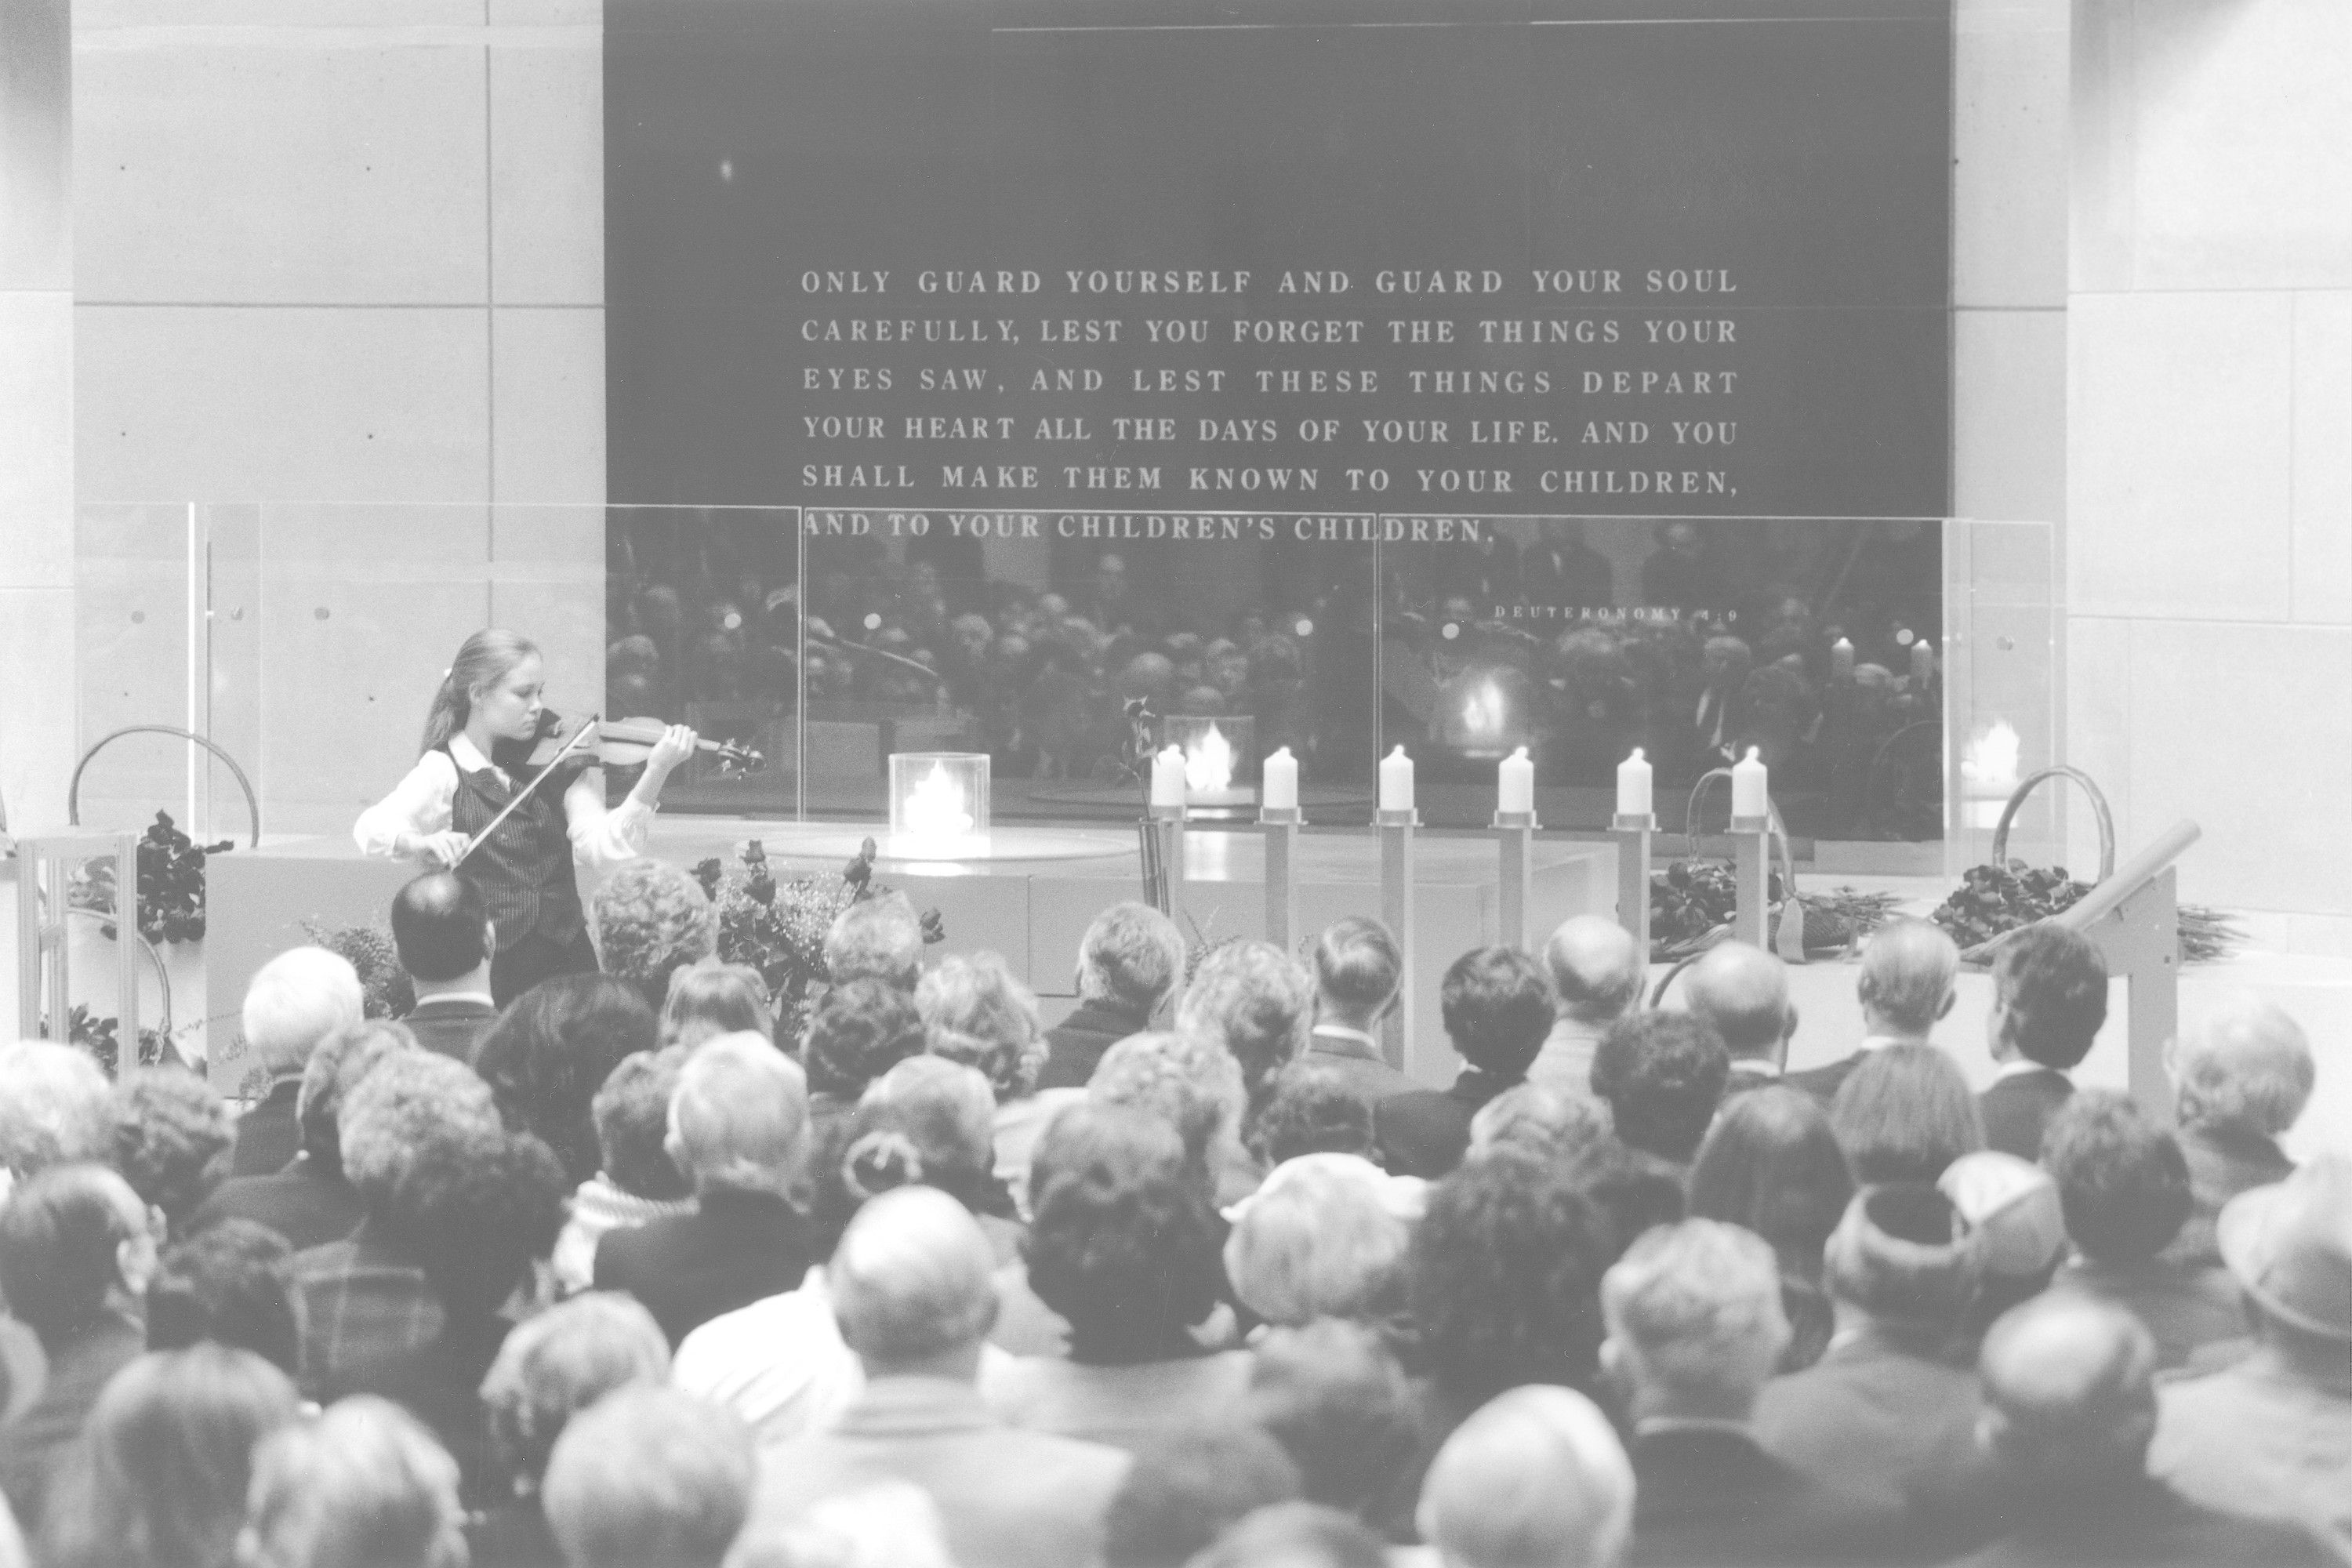 Violinist Leila Josefowicz performs in the Hall of Remembrance during the 50th anniversary commemoration of the liberation of Auschwitz-Birkenau at the U.S. Holocaust Memorial Museum.